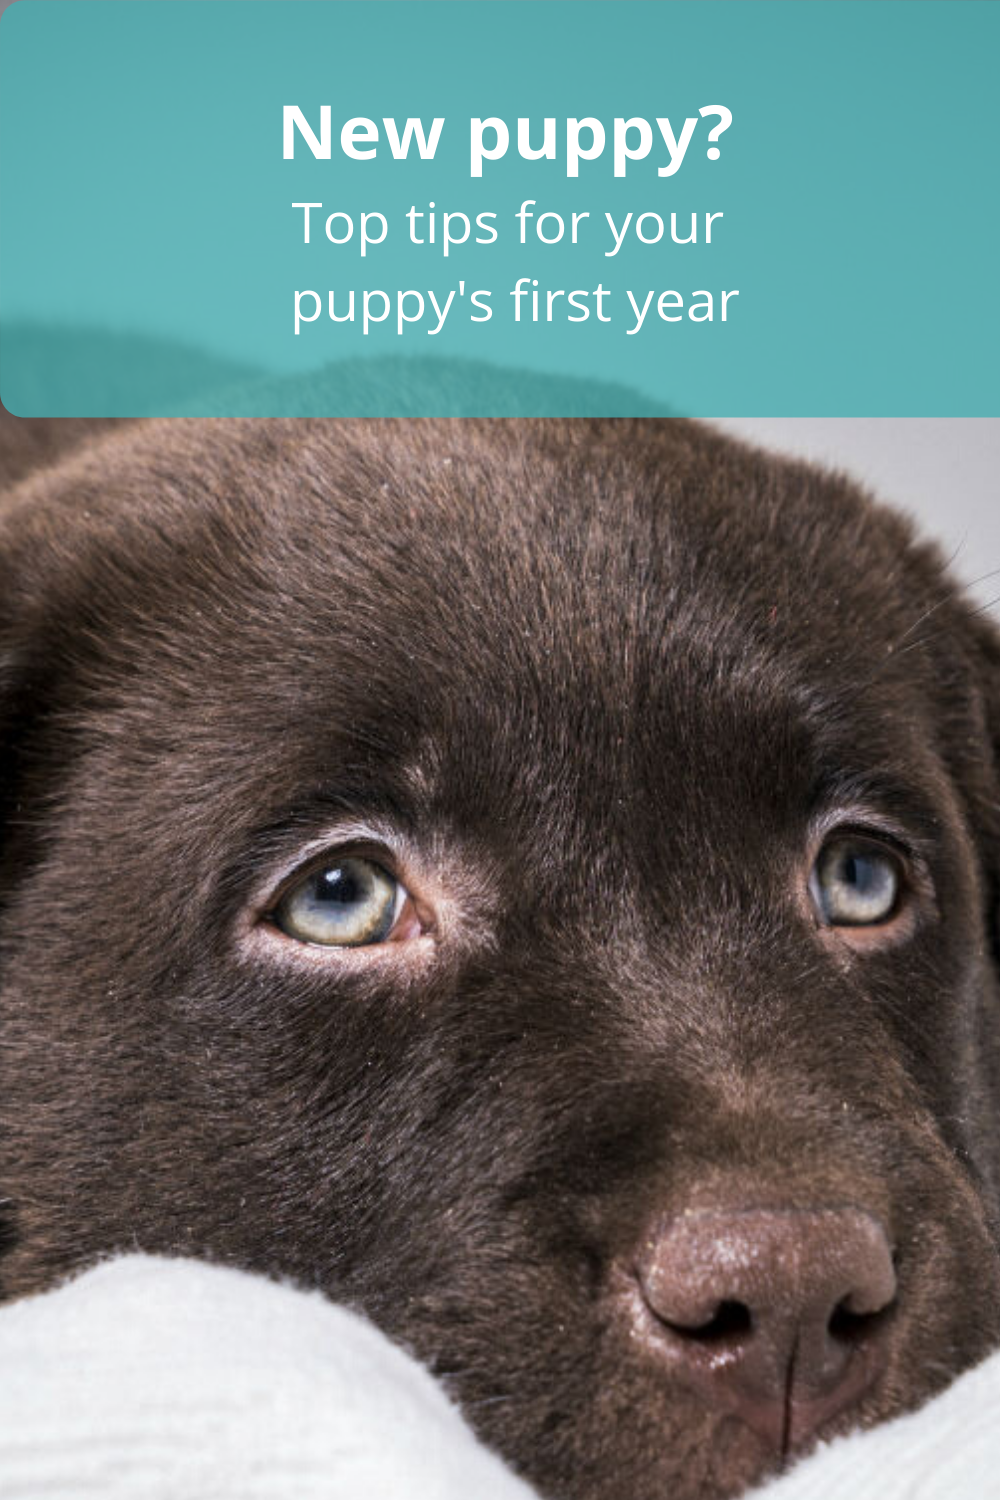 New Puppy Tips In 2020 New Puppy Puppies Puppy Top